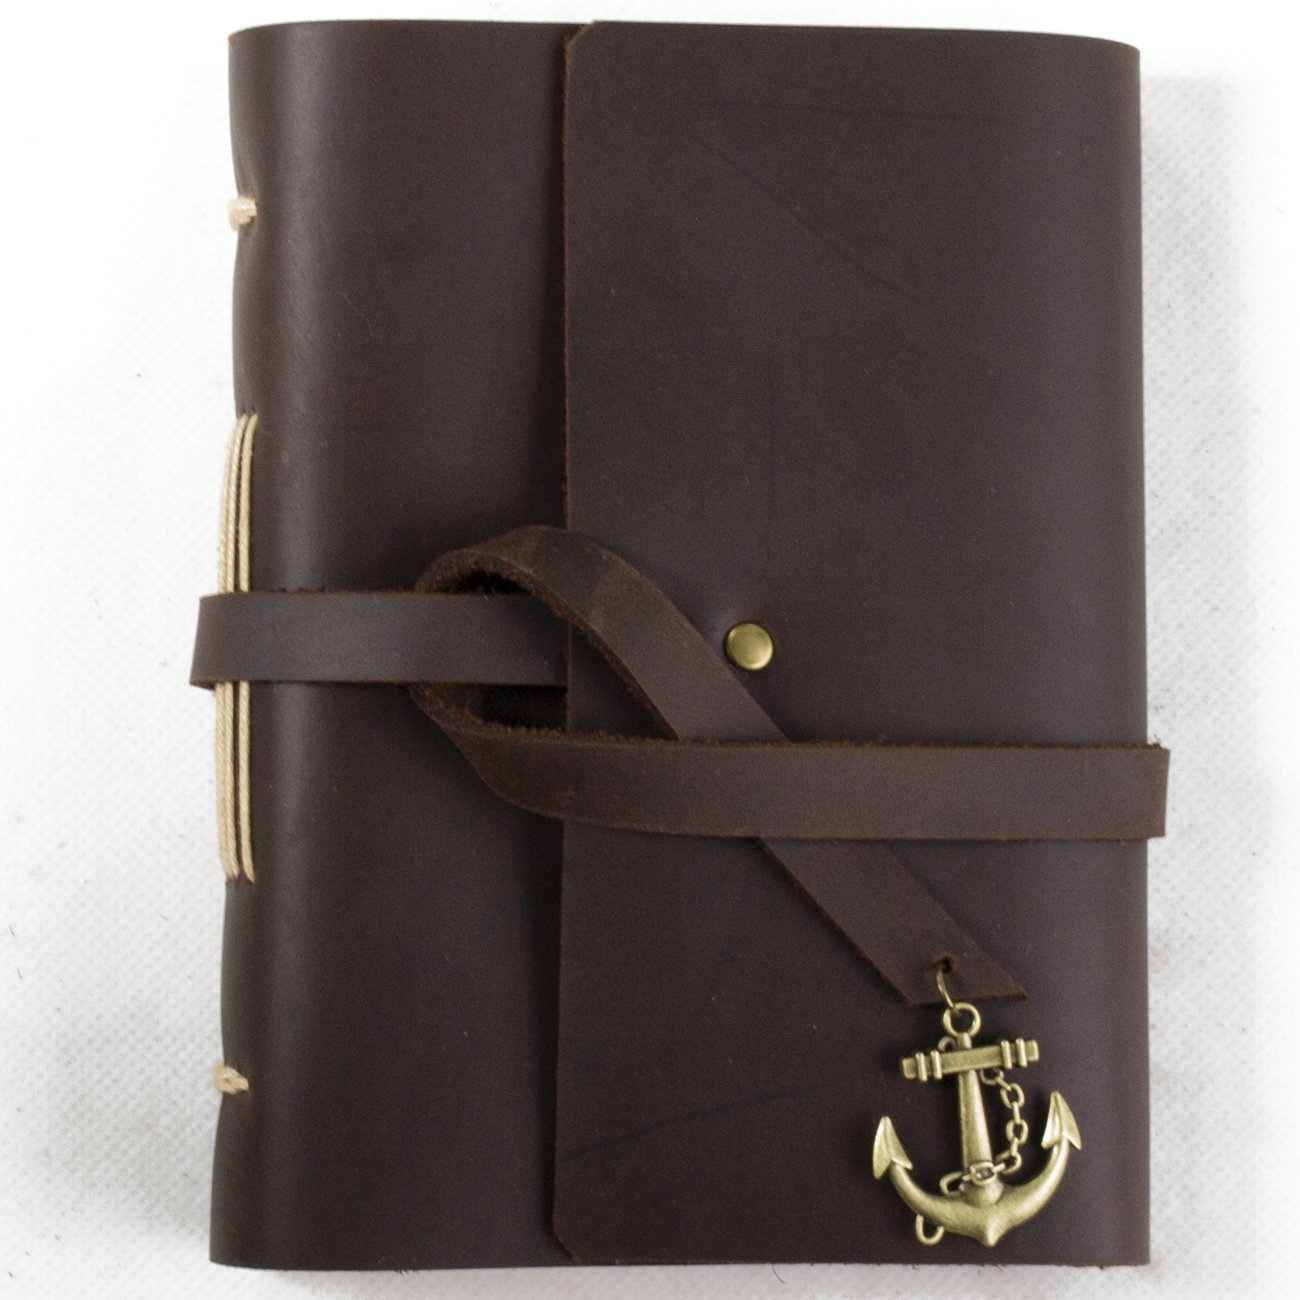 Ancicraft Small Leather Journal Diary with Anchor Vintage Handmade A6 Lined Craft Paper Brown with Gift Box (A6-Anchor-Lined Craft Paper)